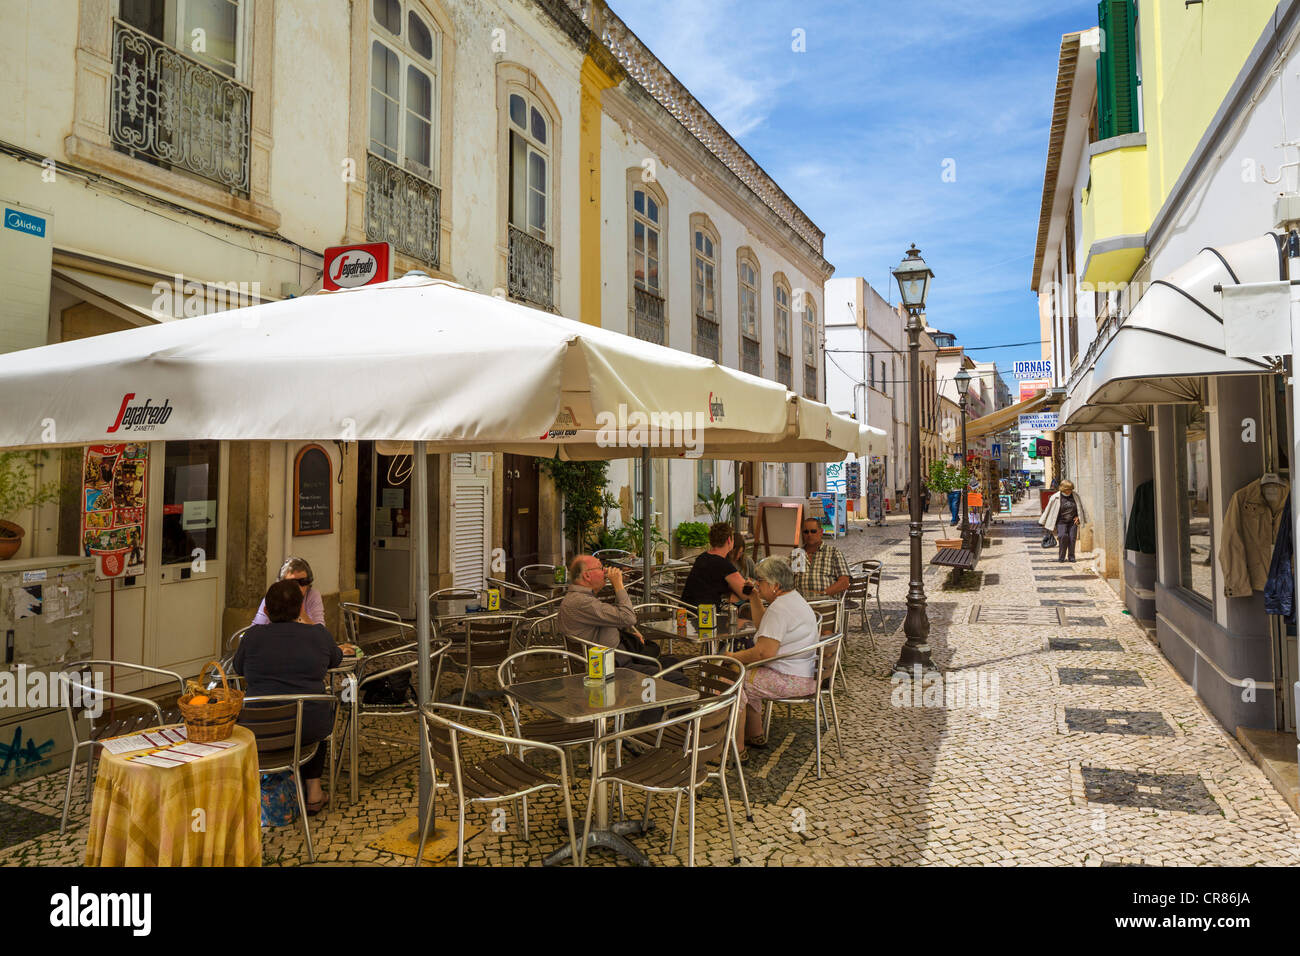 elderly chairs bedroom chair dfs street cafe and shops in the old town, silves, algarve, portugal stock photo: 48738658 - alamy